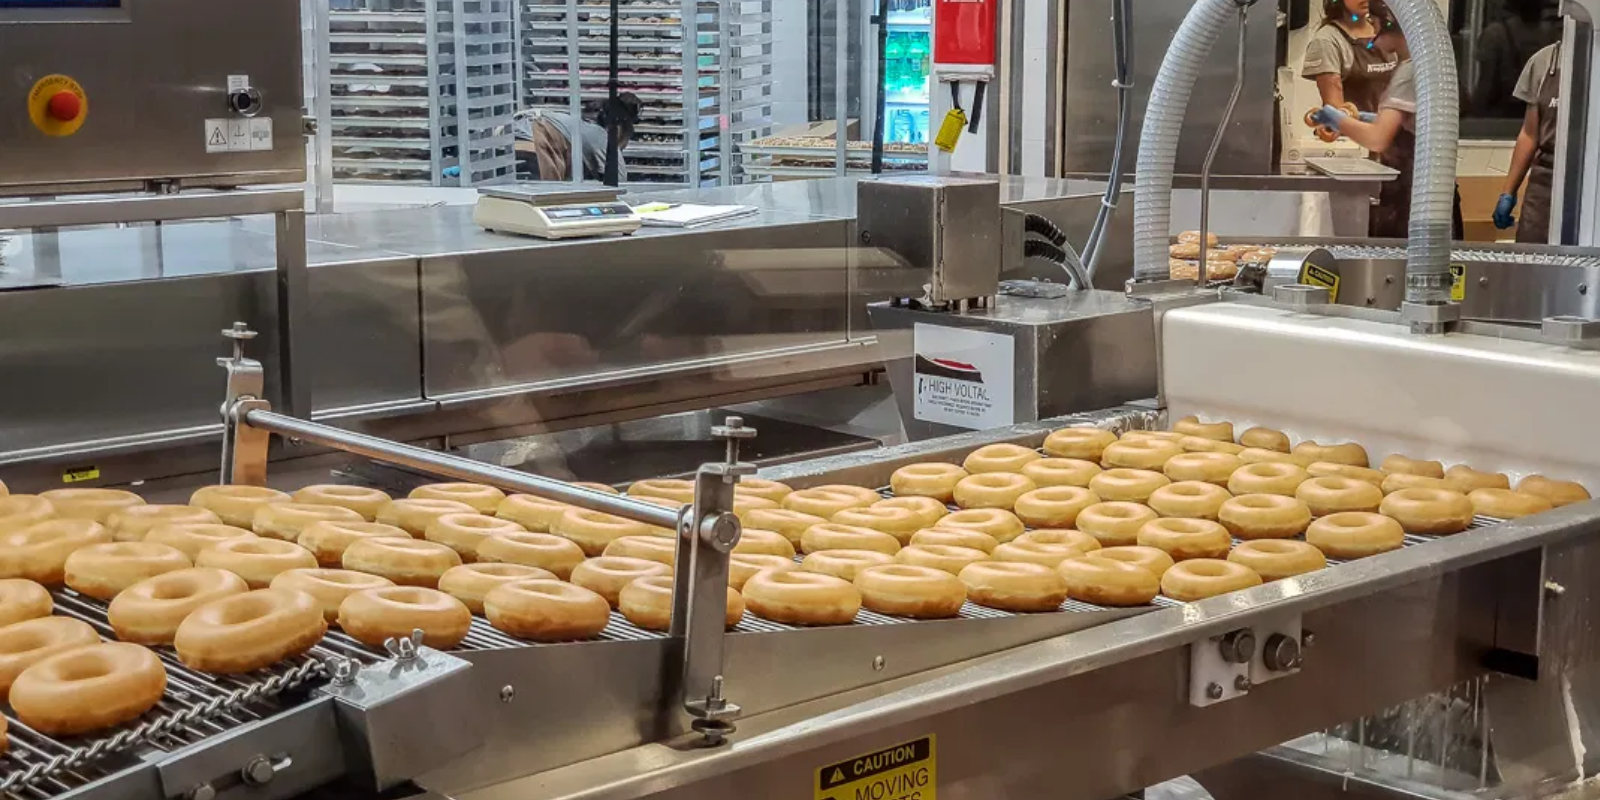 Krispy Kreme offers free daily donuts to those with vaccine—despite obesity being a leading factor in COVID deaths